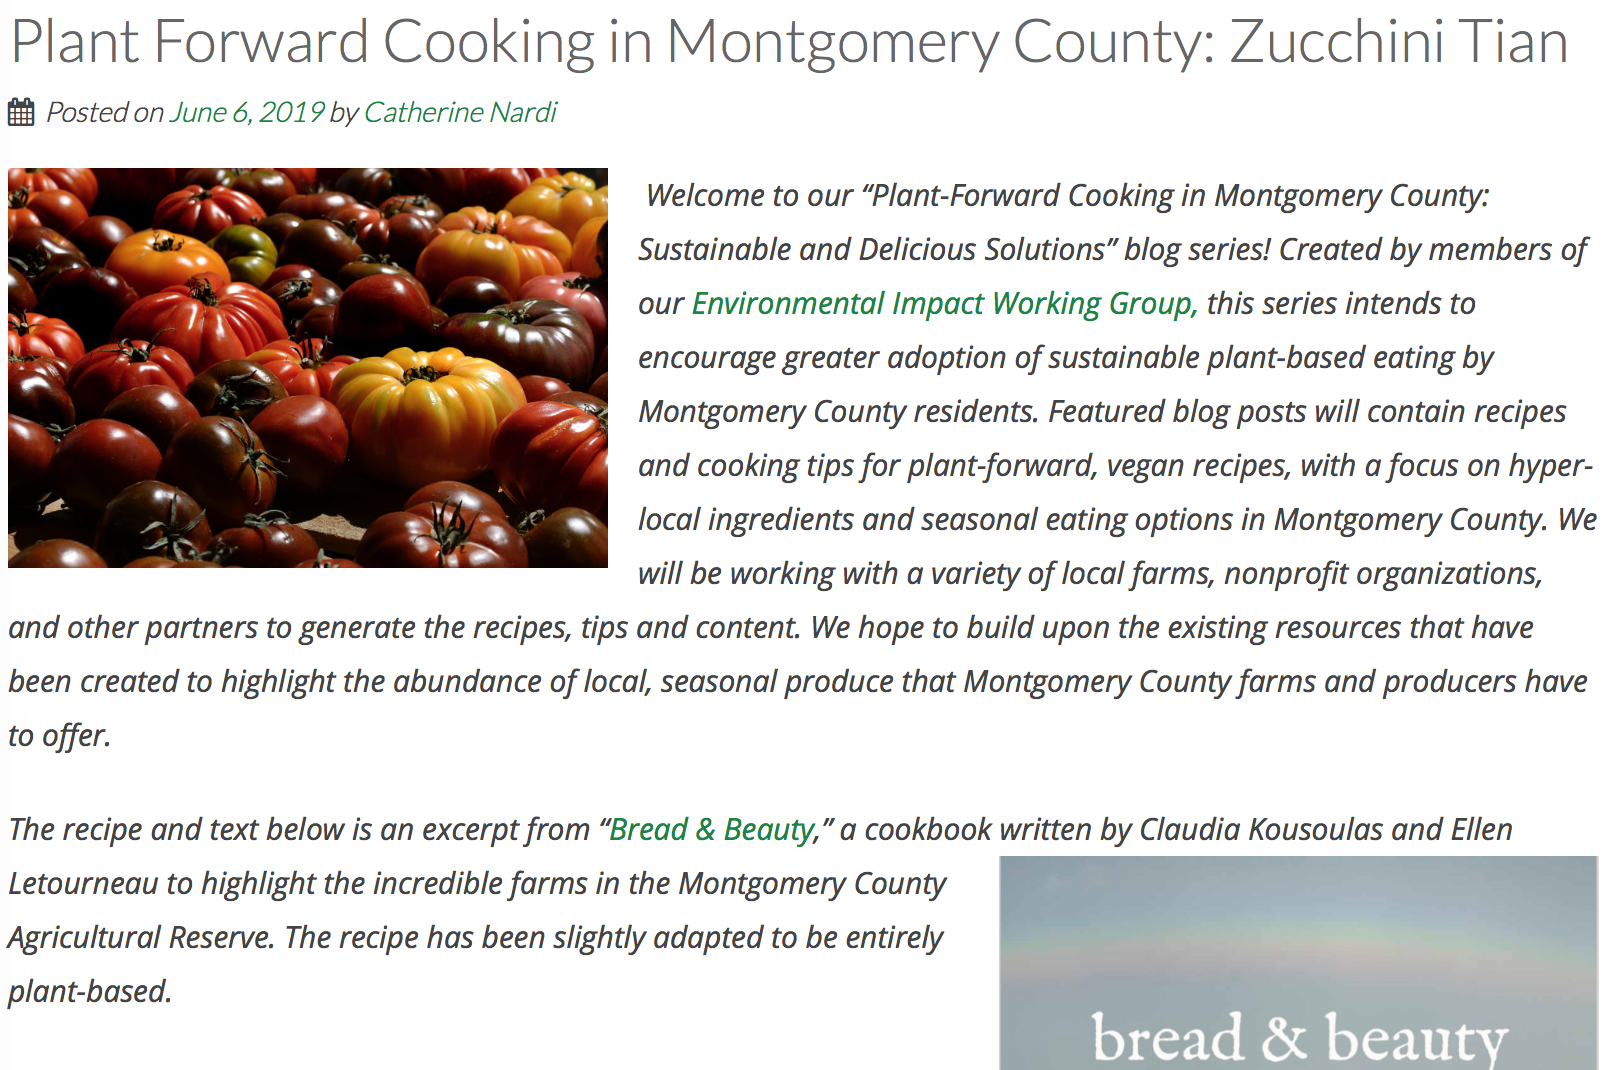 Montgomery County Food Council - We're pleased that our local food council sees Bread & Beauty as a resource  for healthy (and delicious) eating